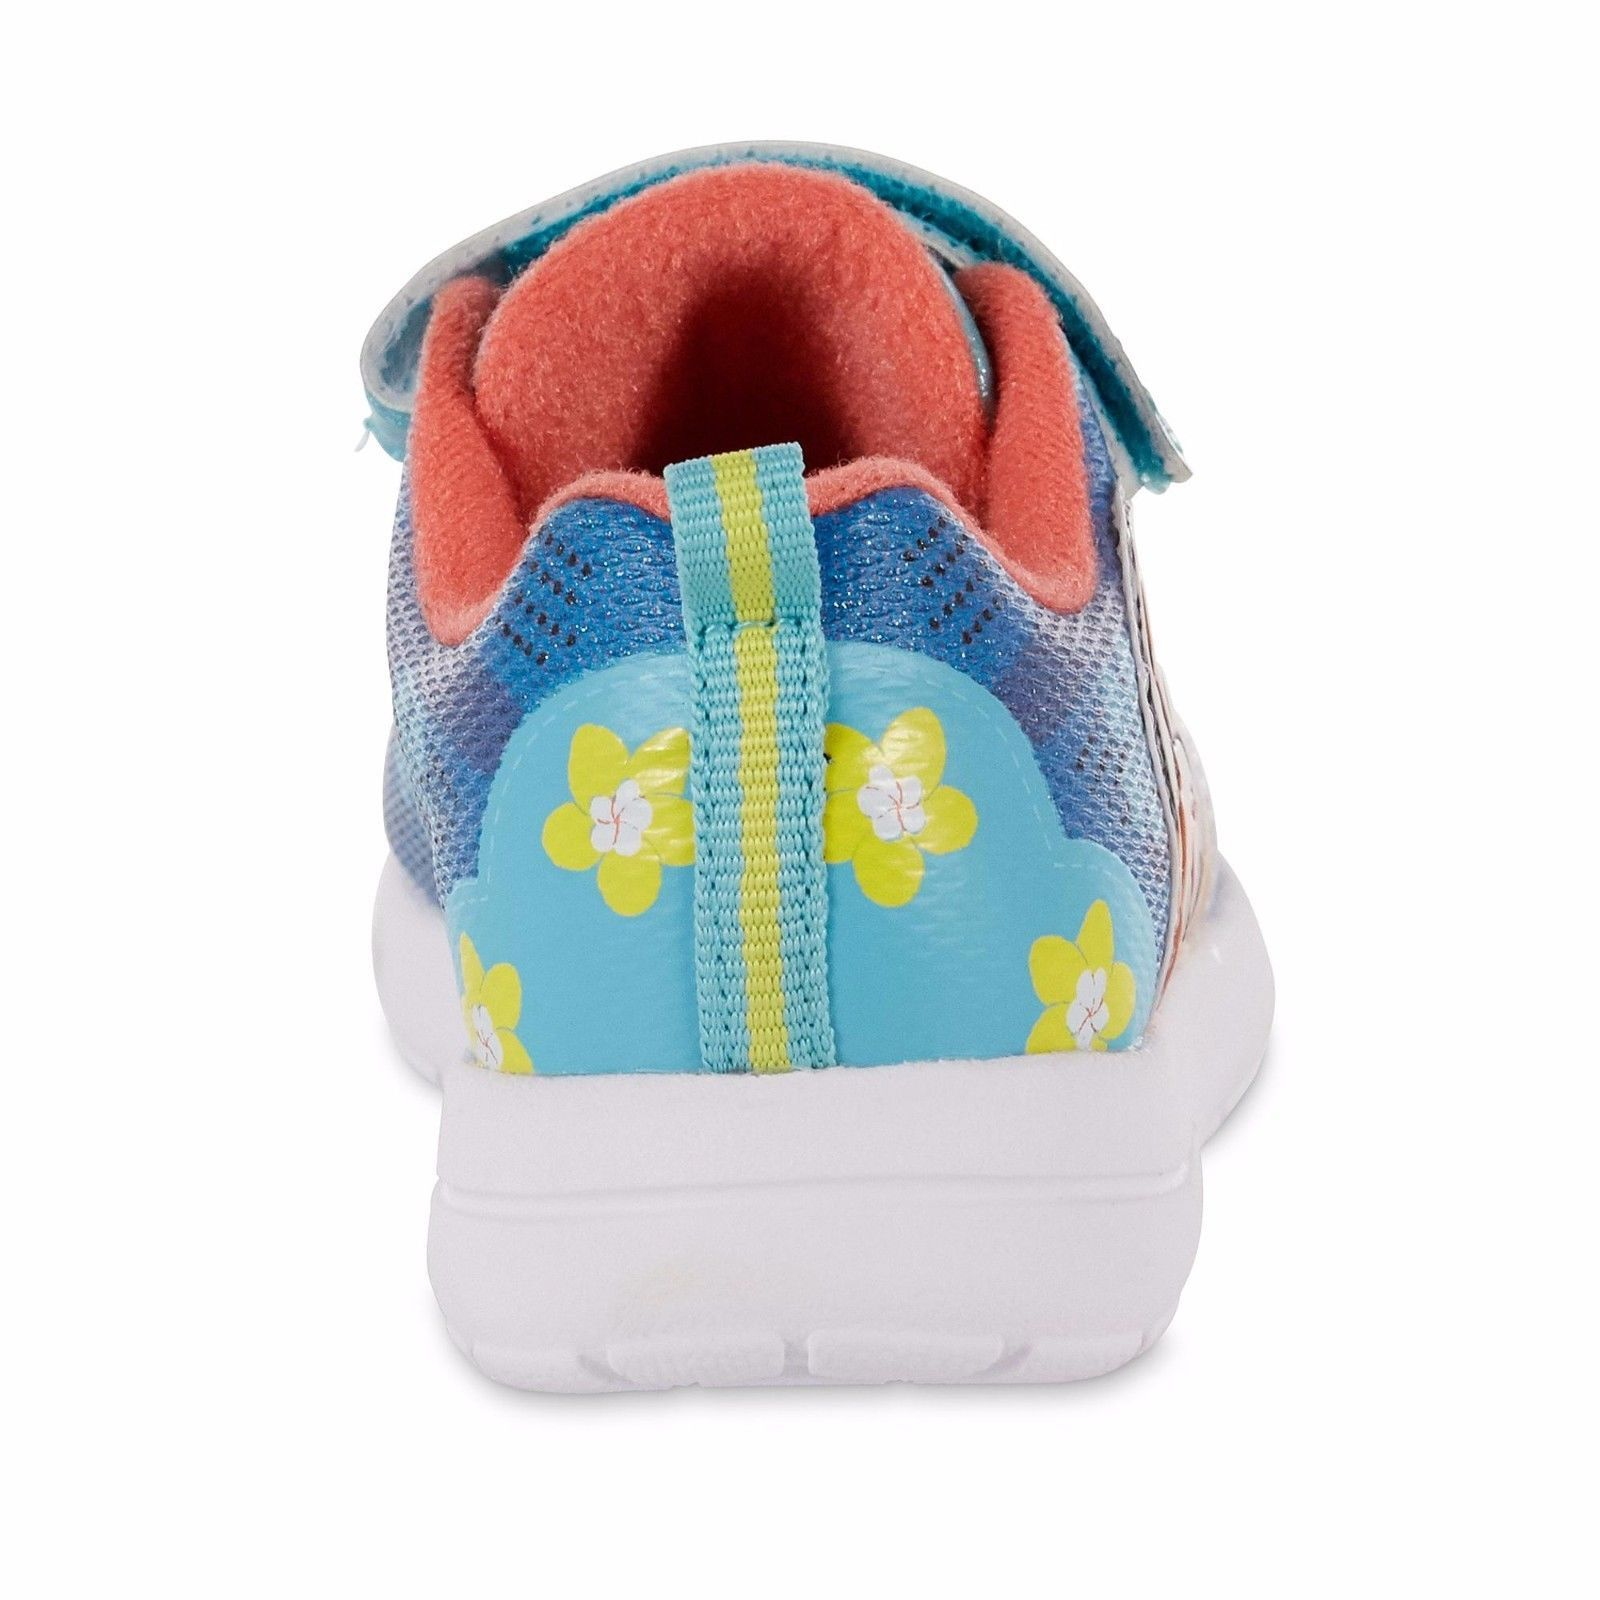 NEW Disney Moana Sneakers Toddler Child Size 6 9 10 11 or 12